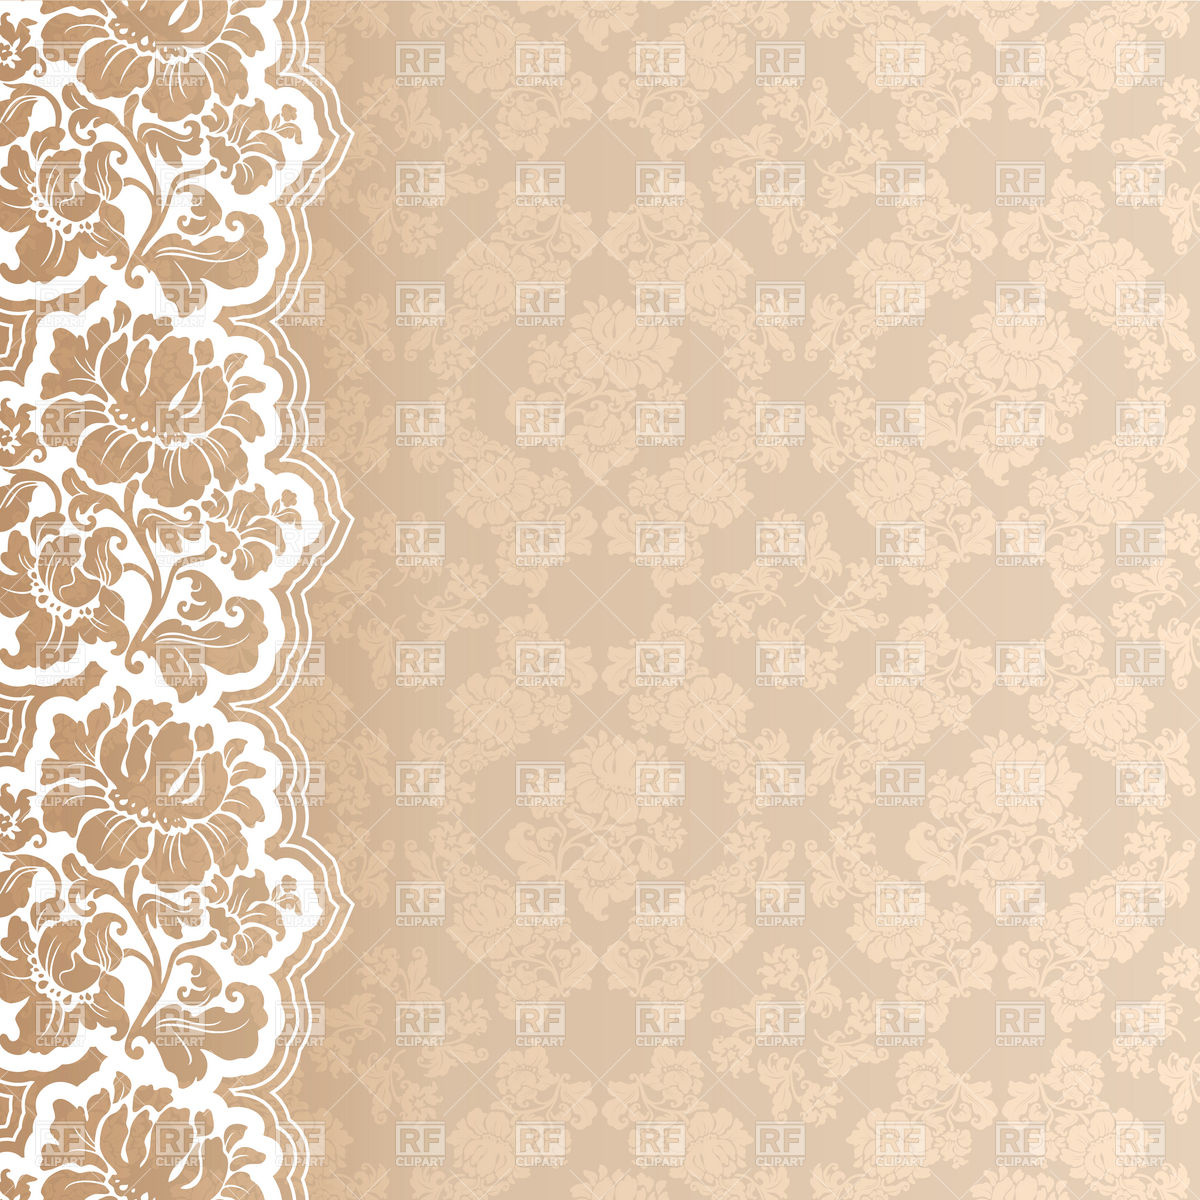 Floral victorian wallpaper with lace border Royalty 1200x1200